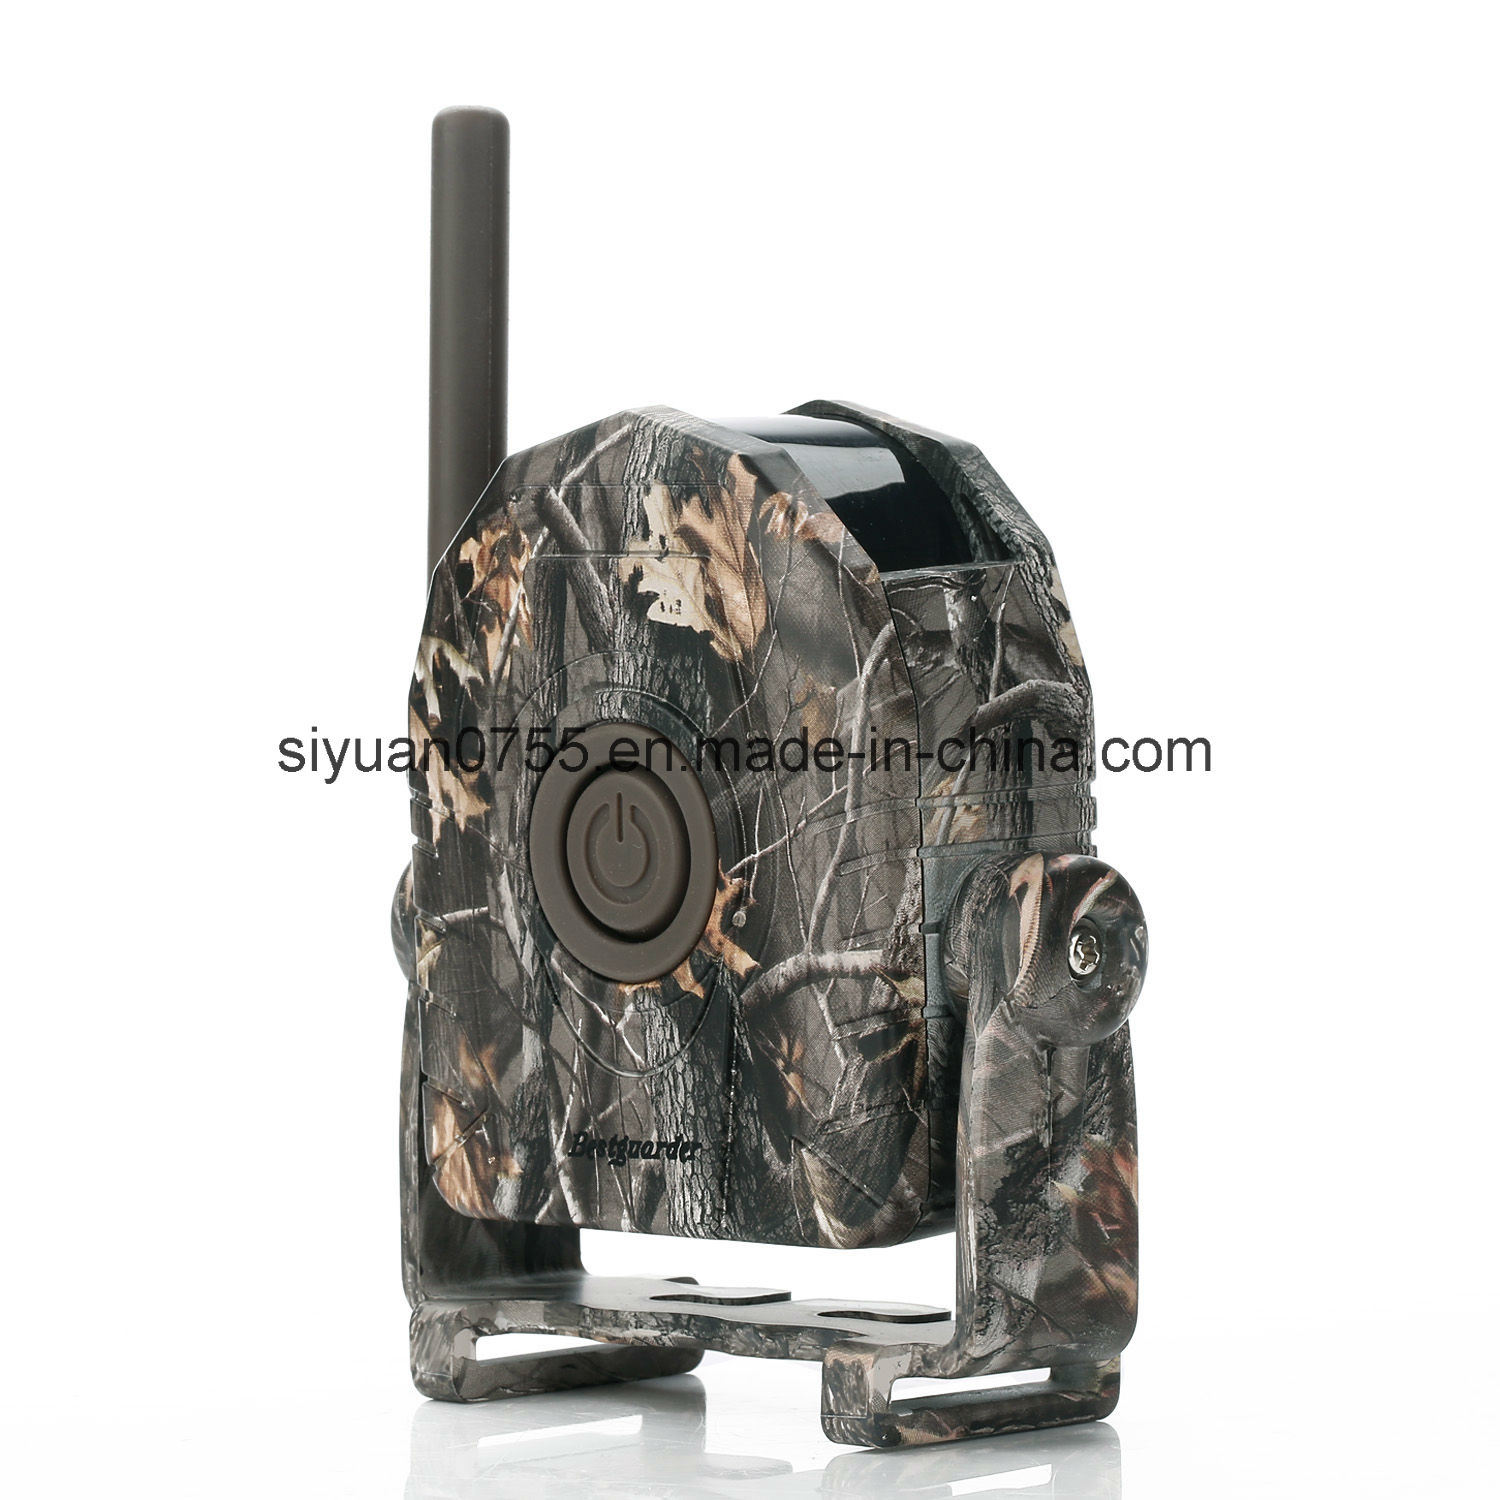 Hunting Wireless Alarm Bestguarder Sy007